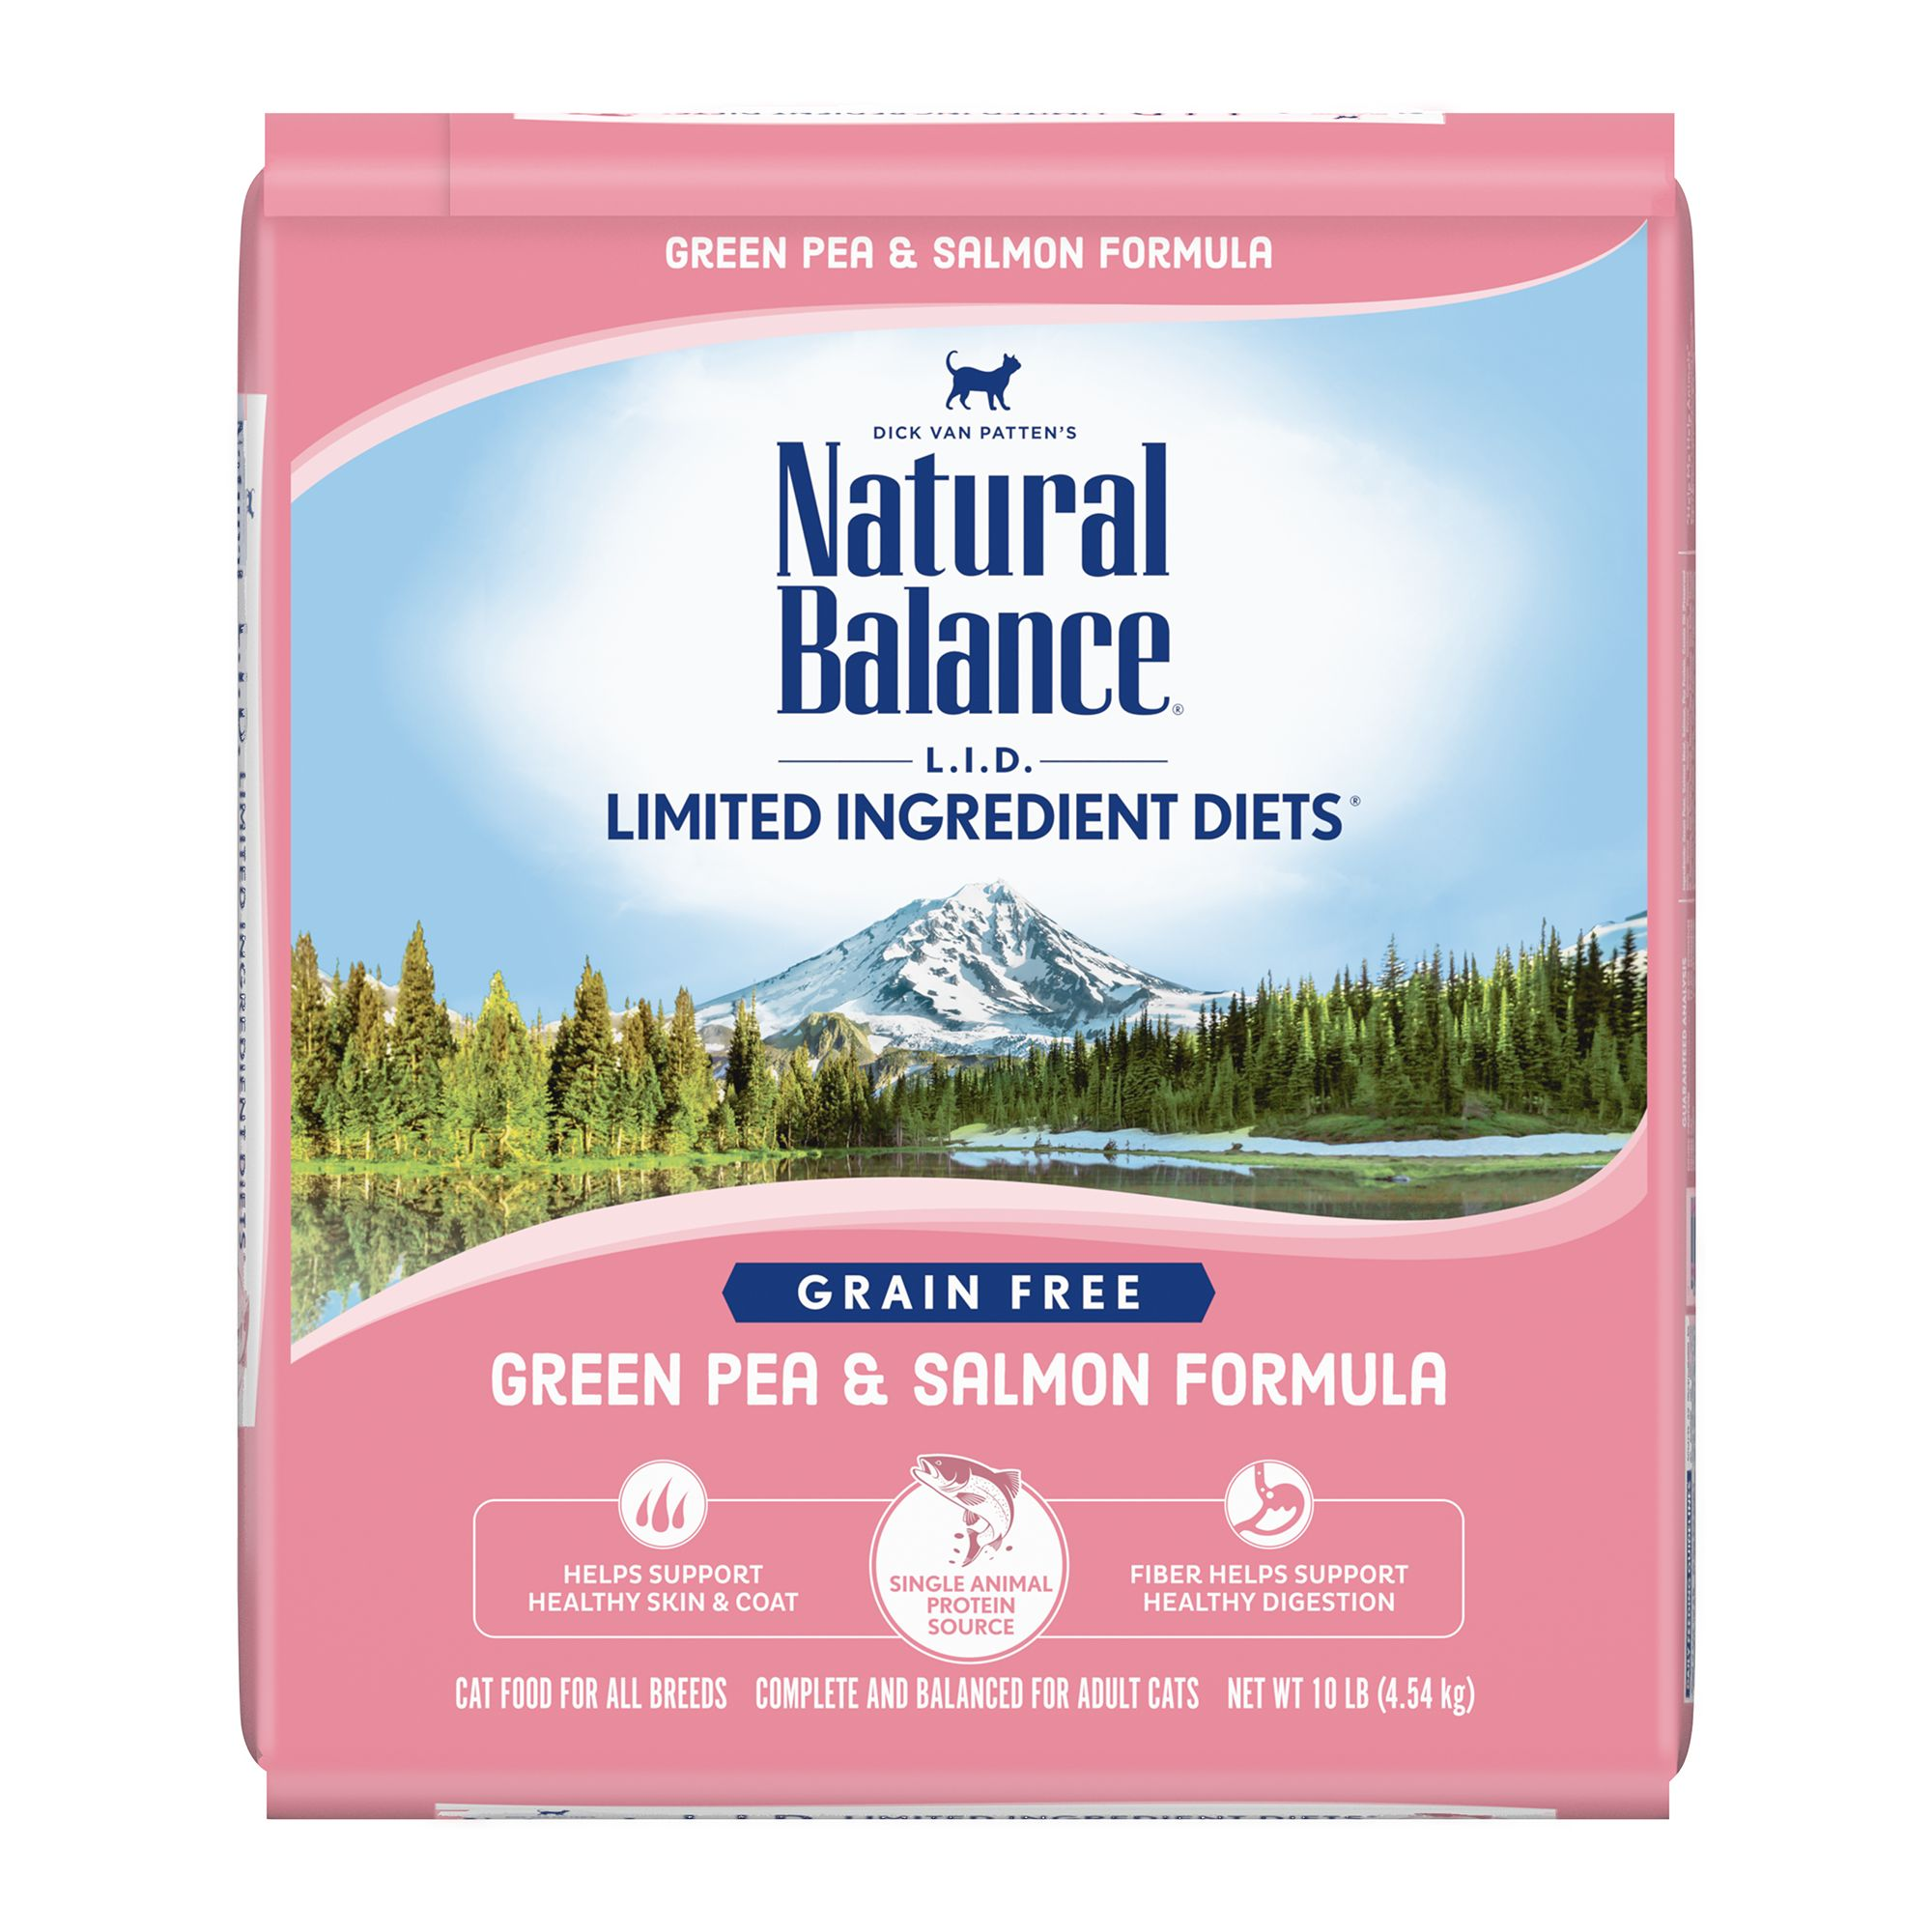 Natural Balance Limited Ingredient Diets Cat Food - Grain Free, Green Pea and Salmon size: 10 Lb, Kibble, Adult, Peas